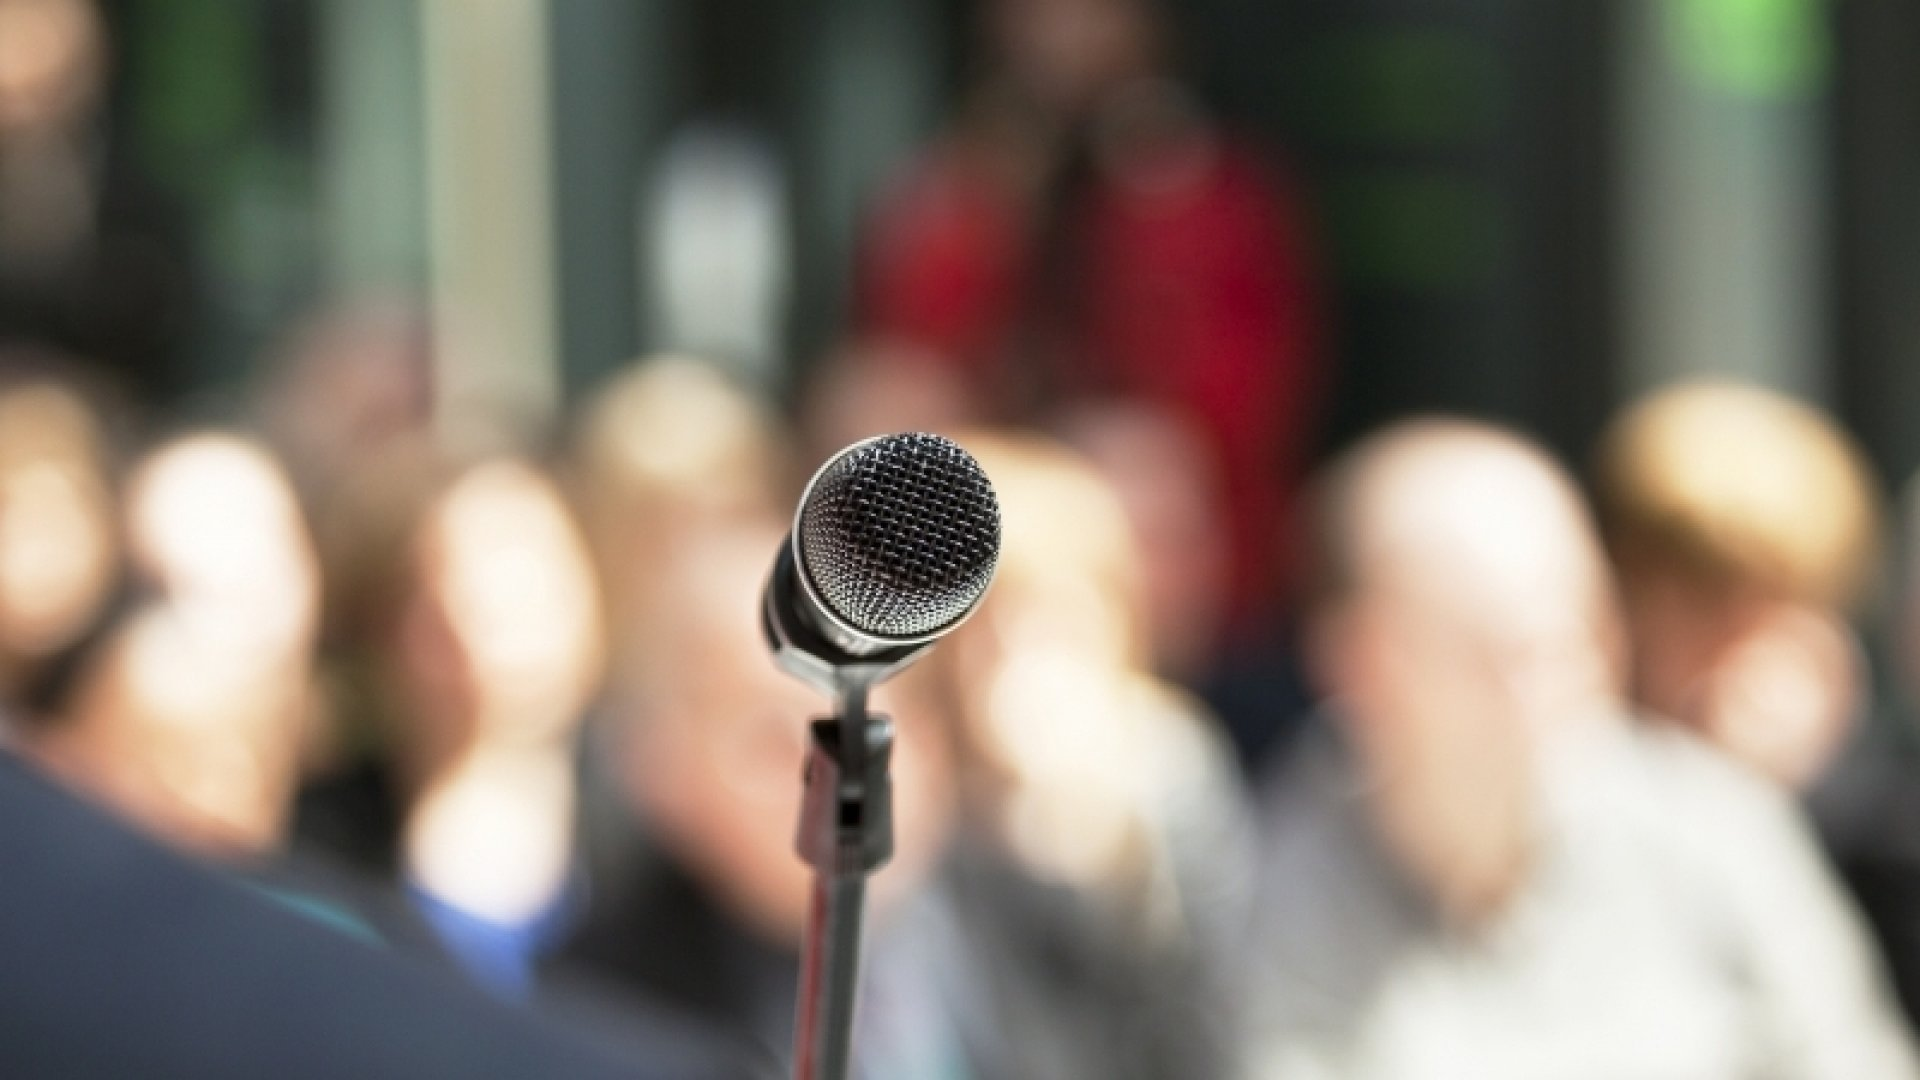 3 Simple Ways to Make Any Presentation More Engaging